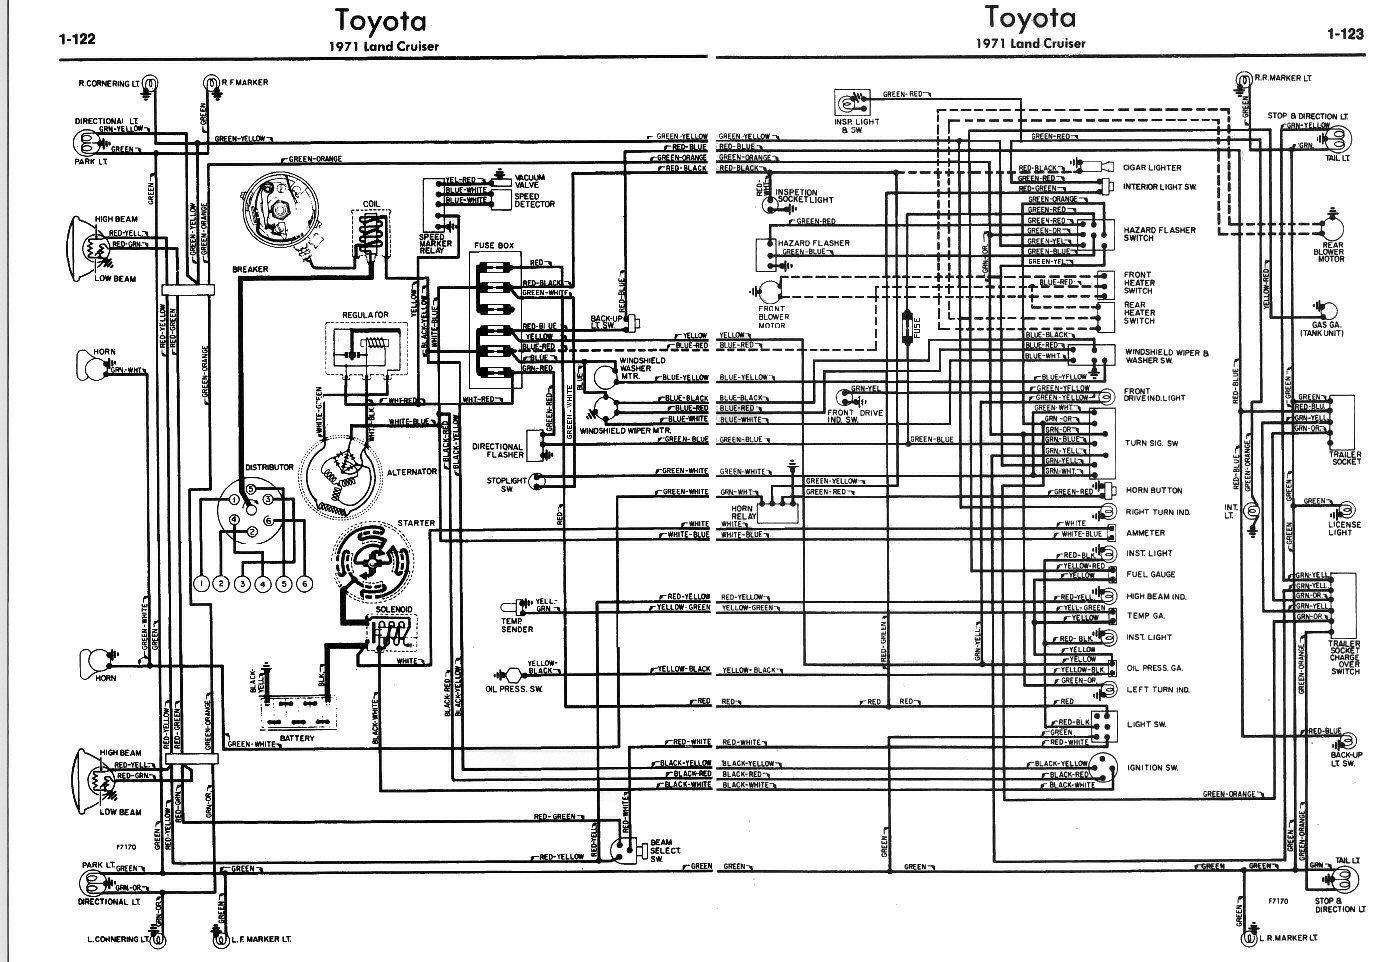 cruiser wiring1976 Fj40 Wiring Diagram #3